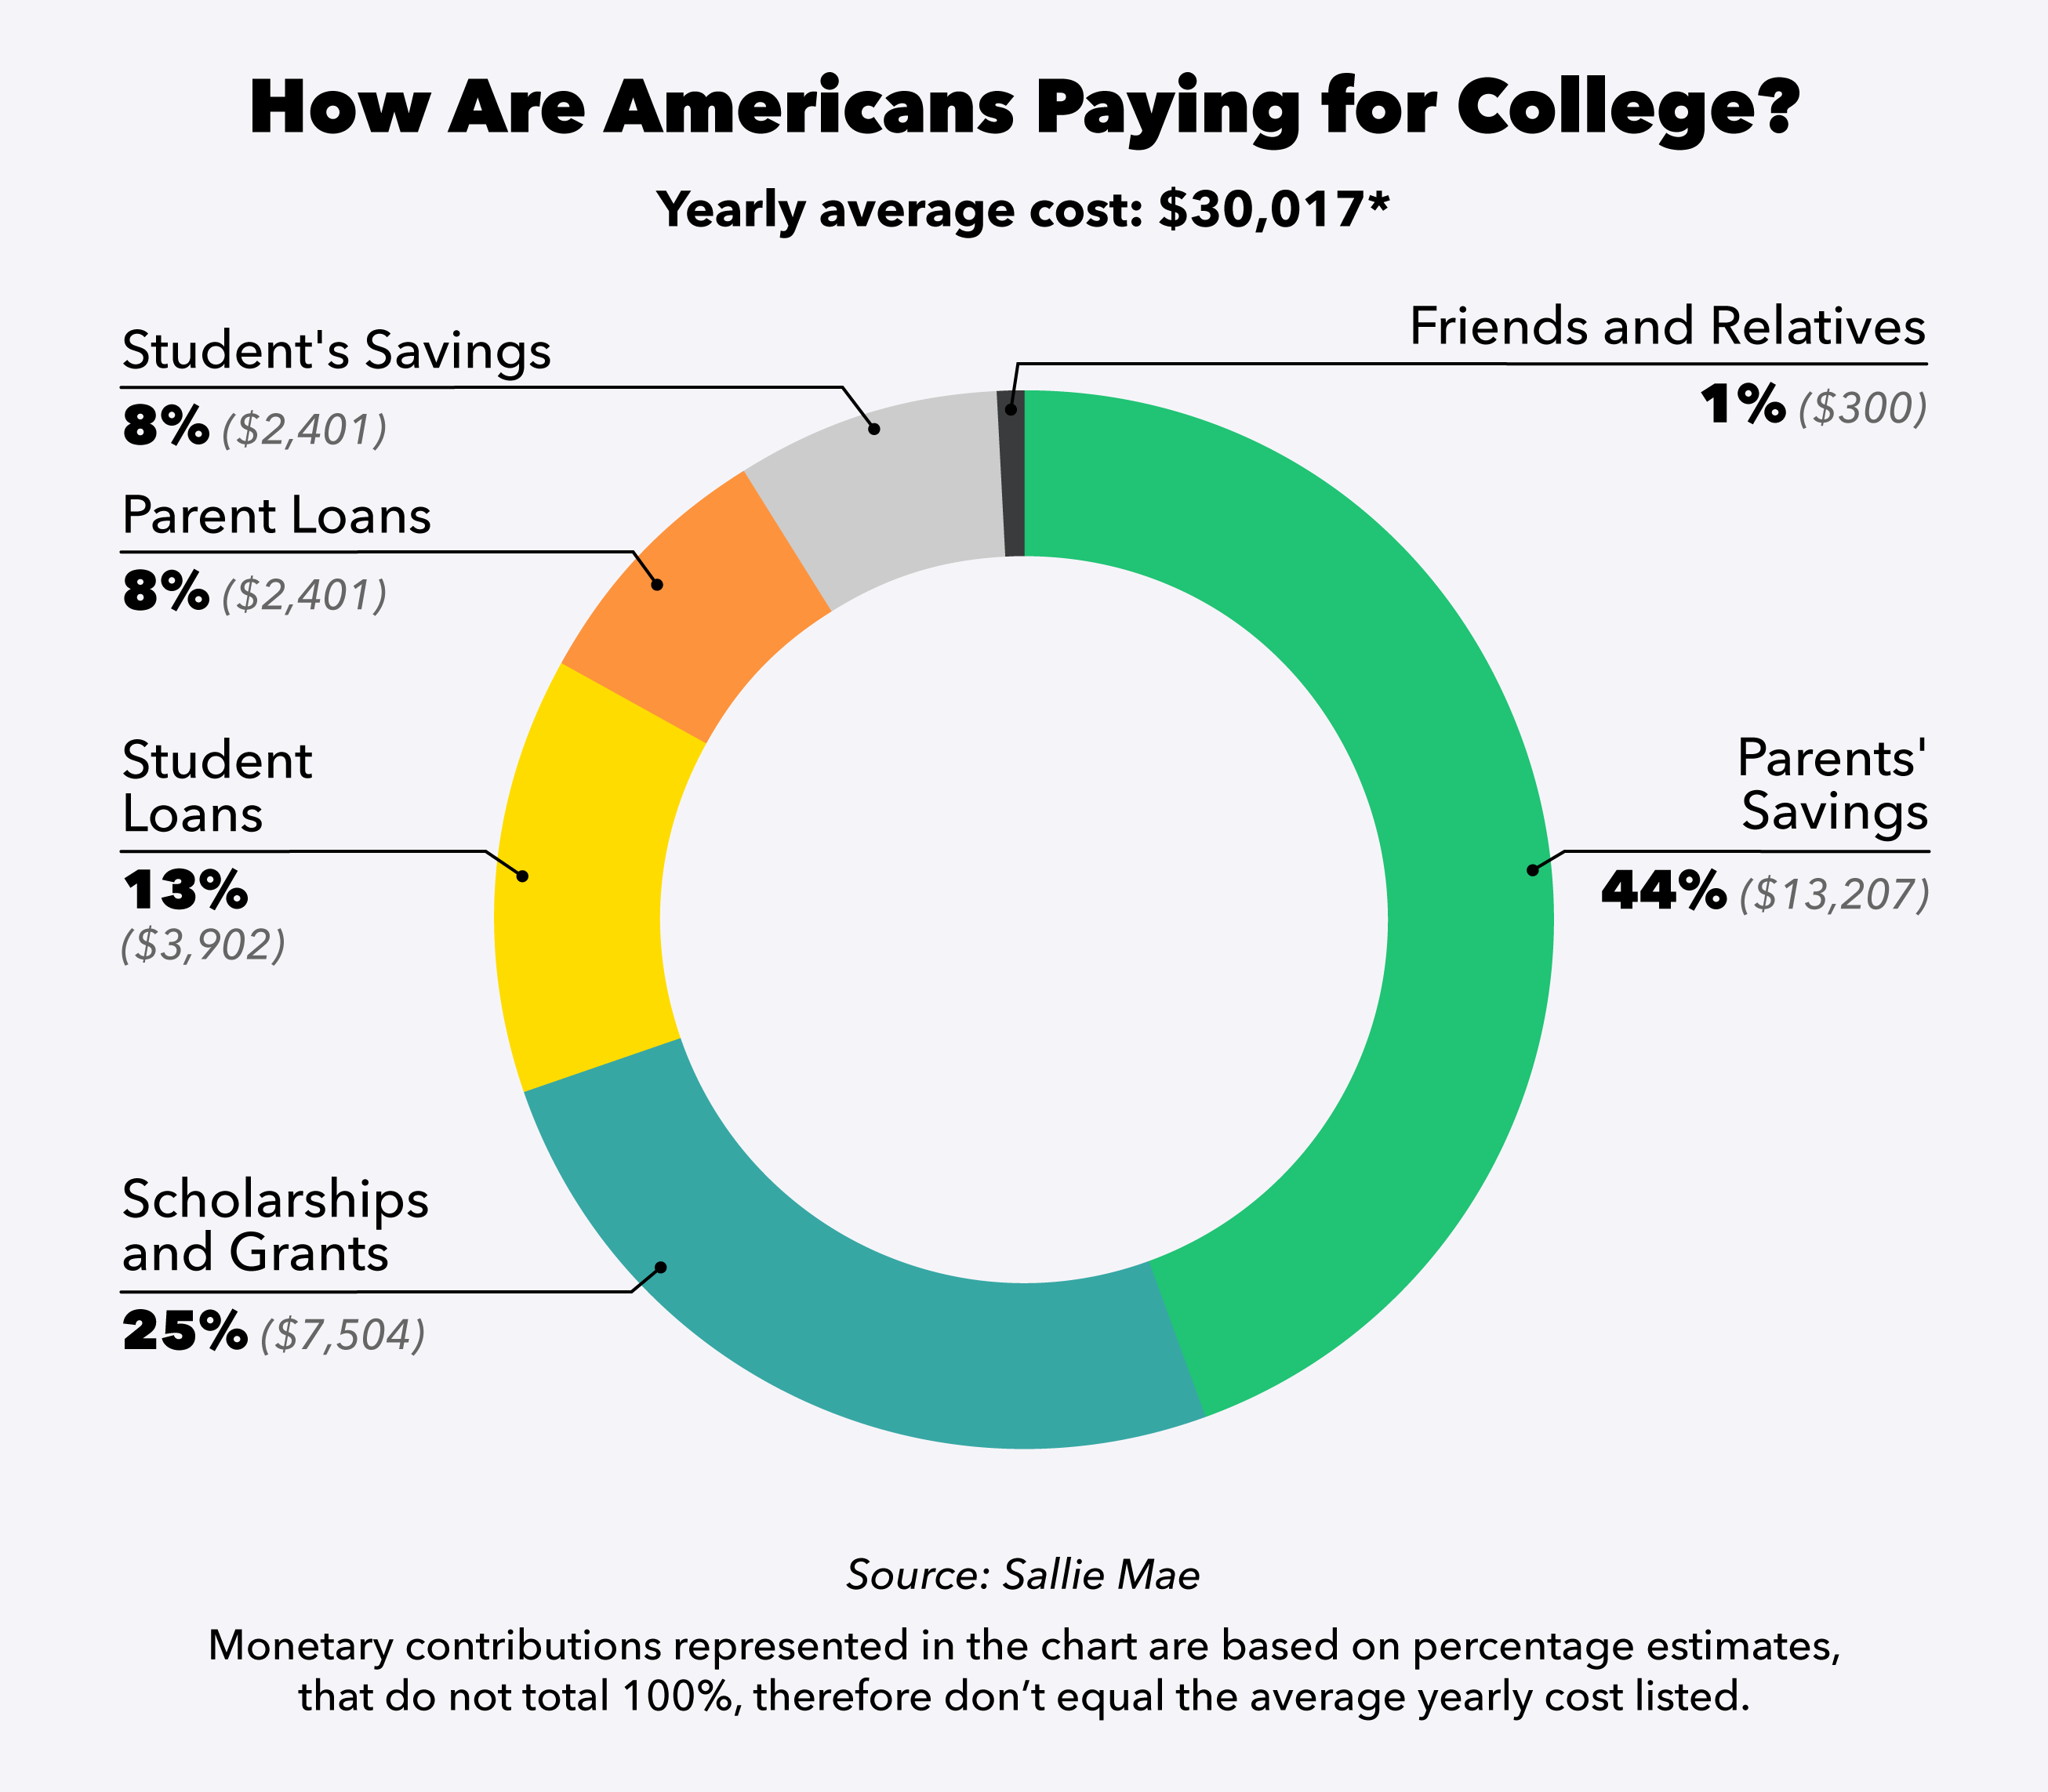 Pie chart comparing who pays for college education. 44%, the majority, is paid through parent savings.